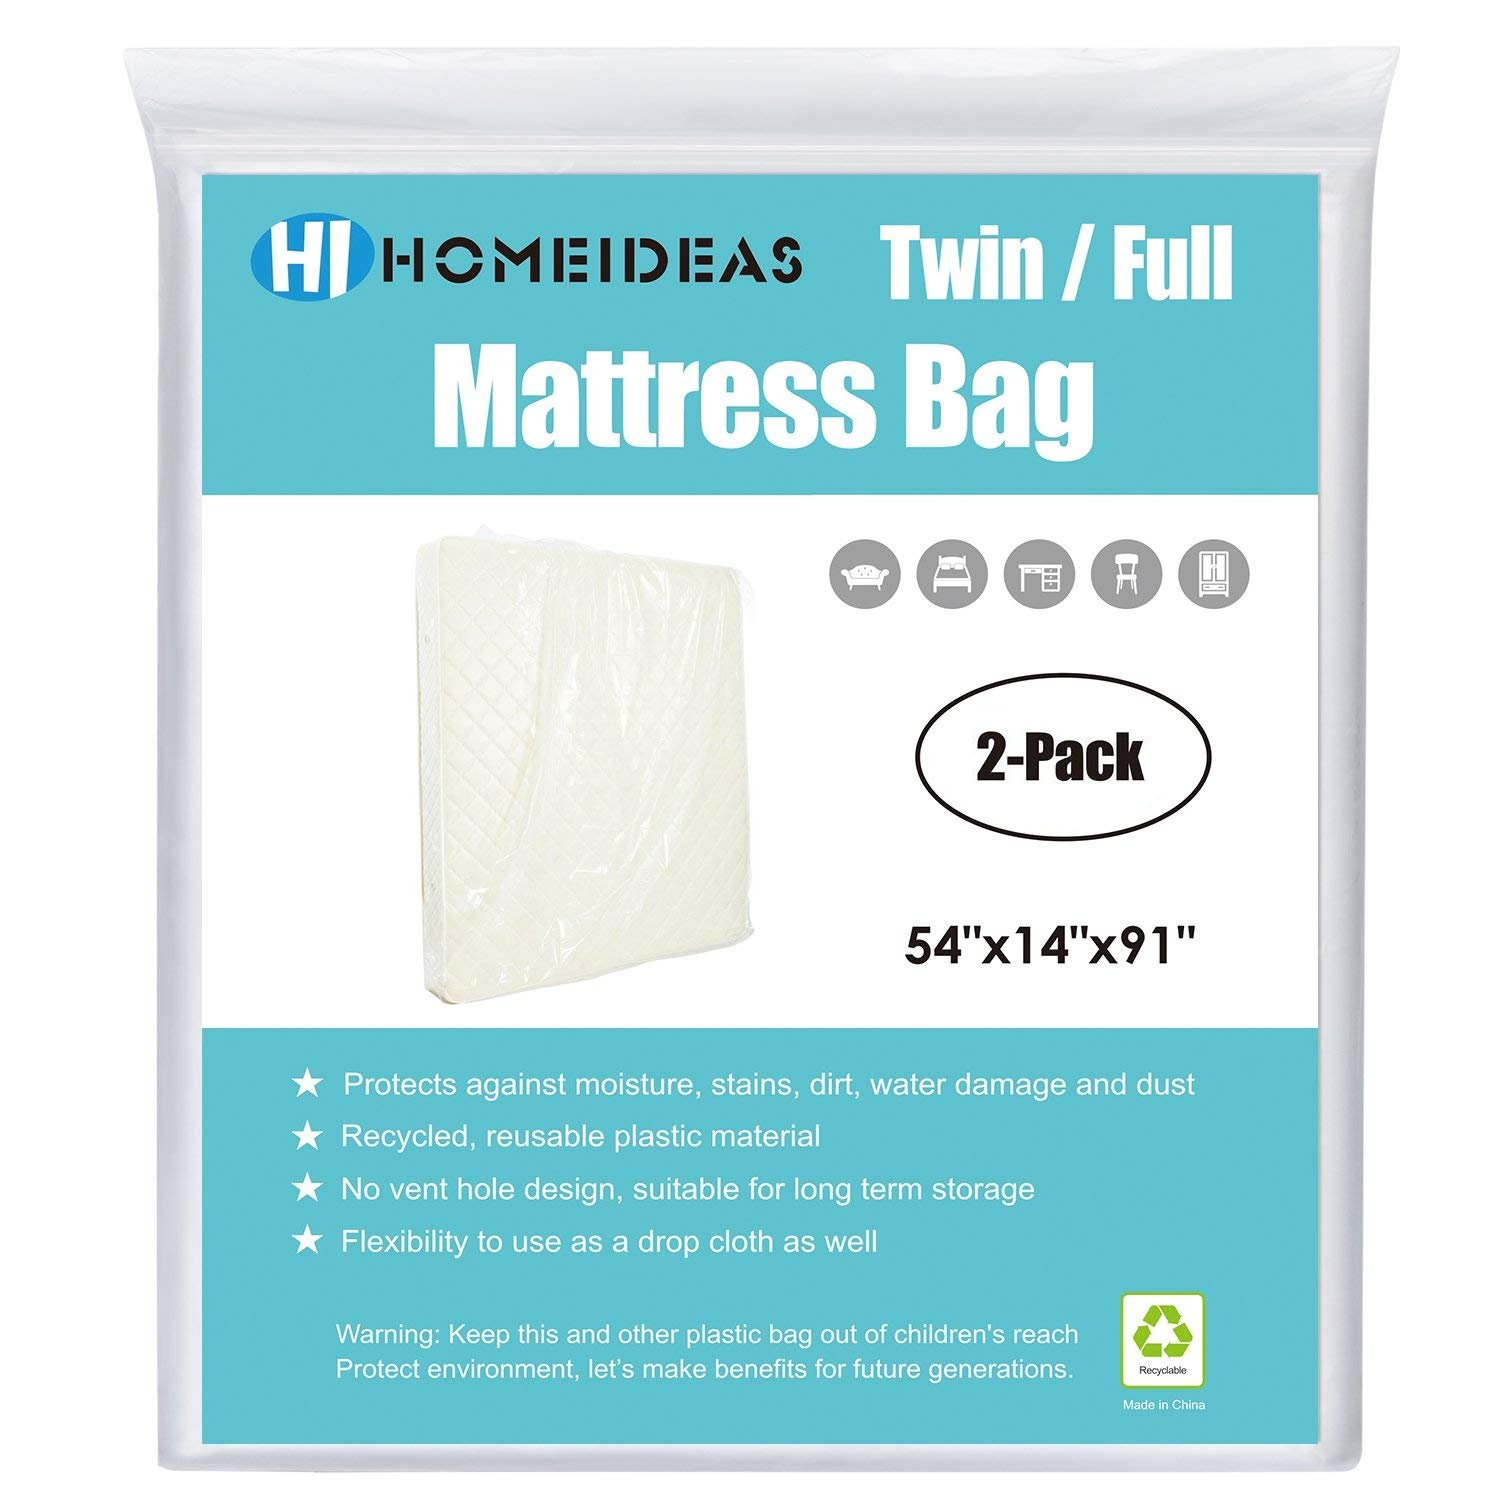 (Twin/Full) - HOMEIDEAS 2-Pack Extra Thick Mattress Bag for Moving and Storage,Fits Twin/Full Size B074QNZQ1T Parent  Twin / Full